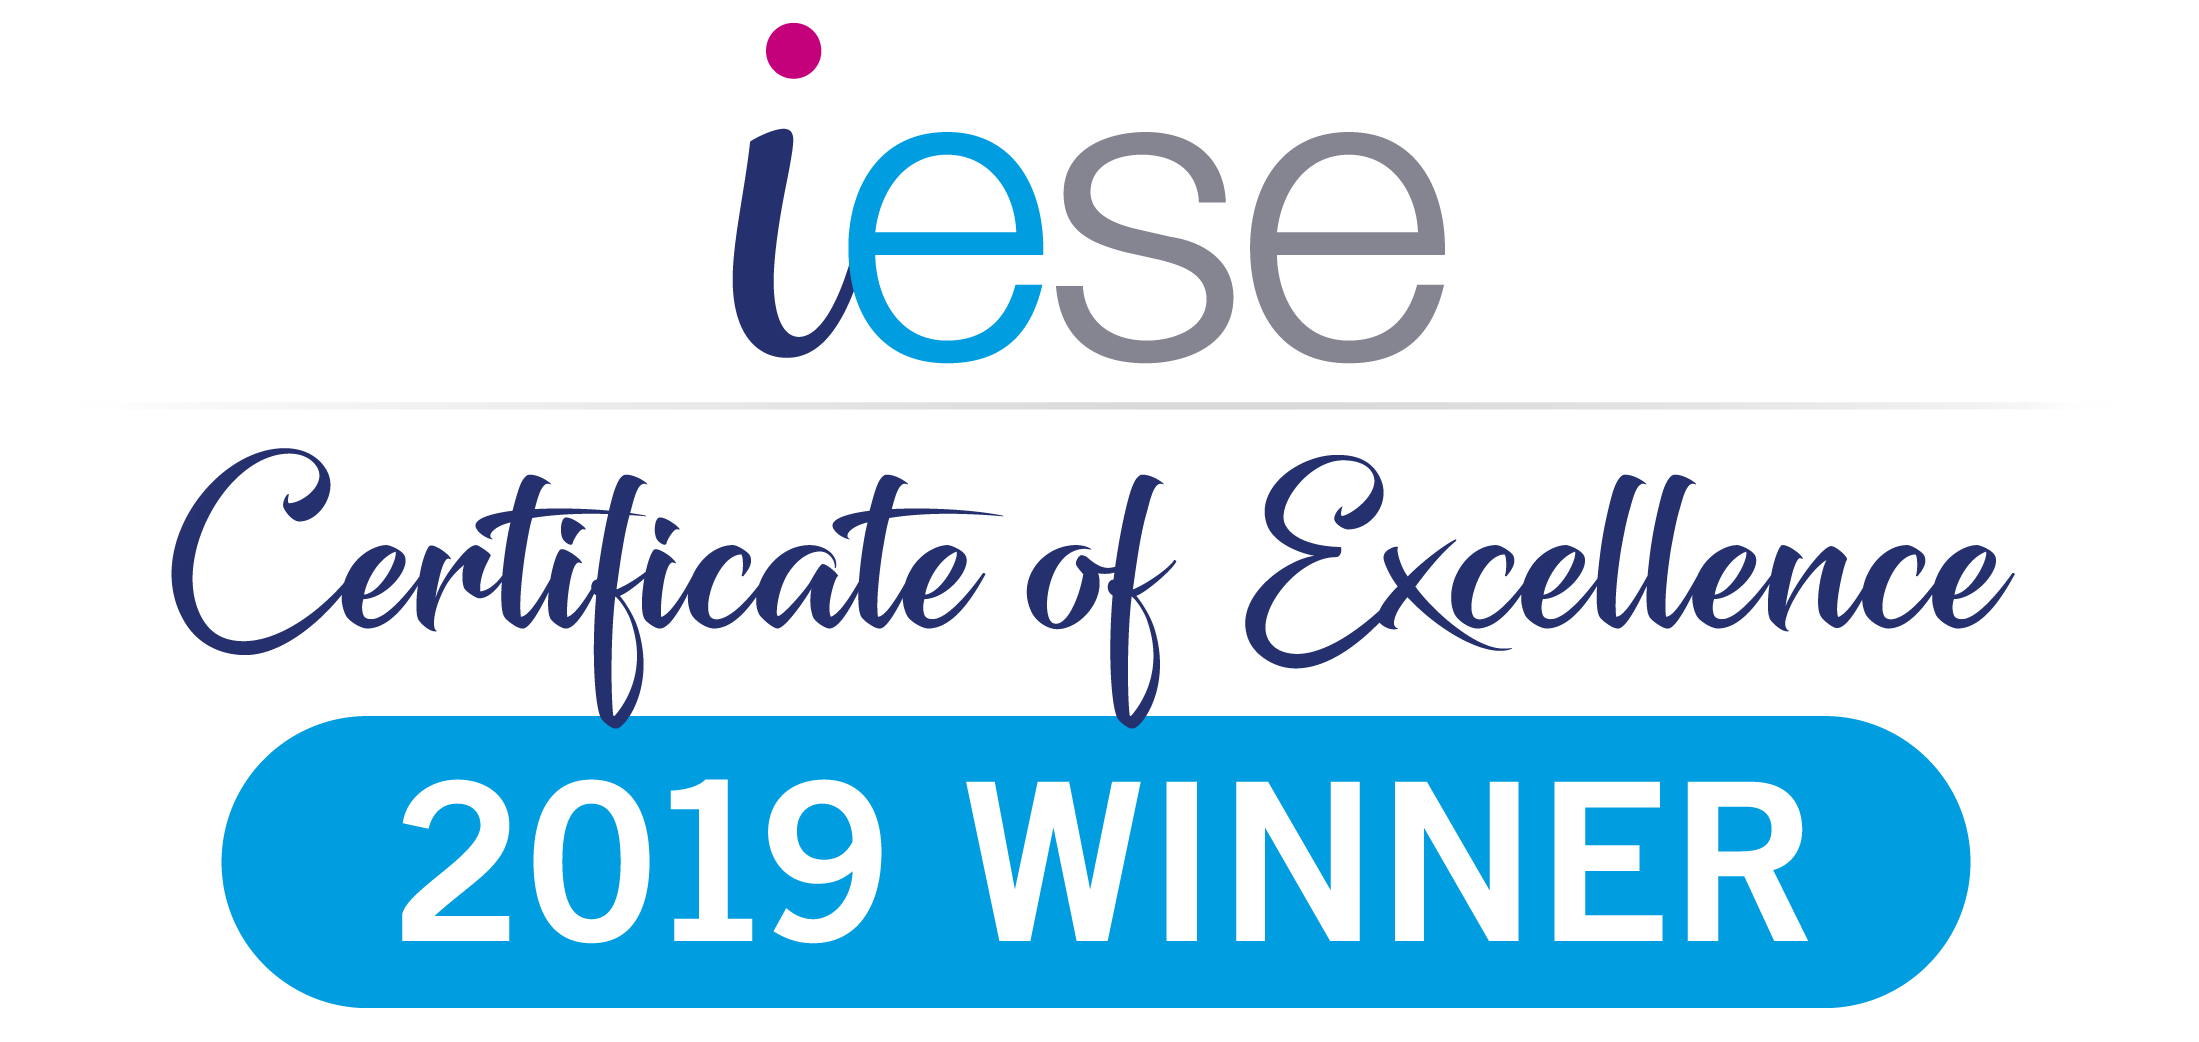 iese certificate of excellence 2019 winner logo